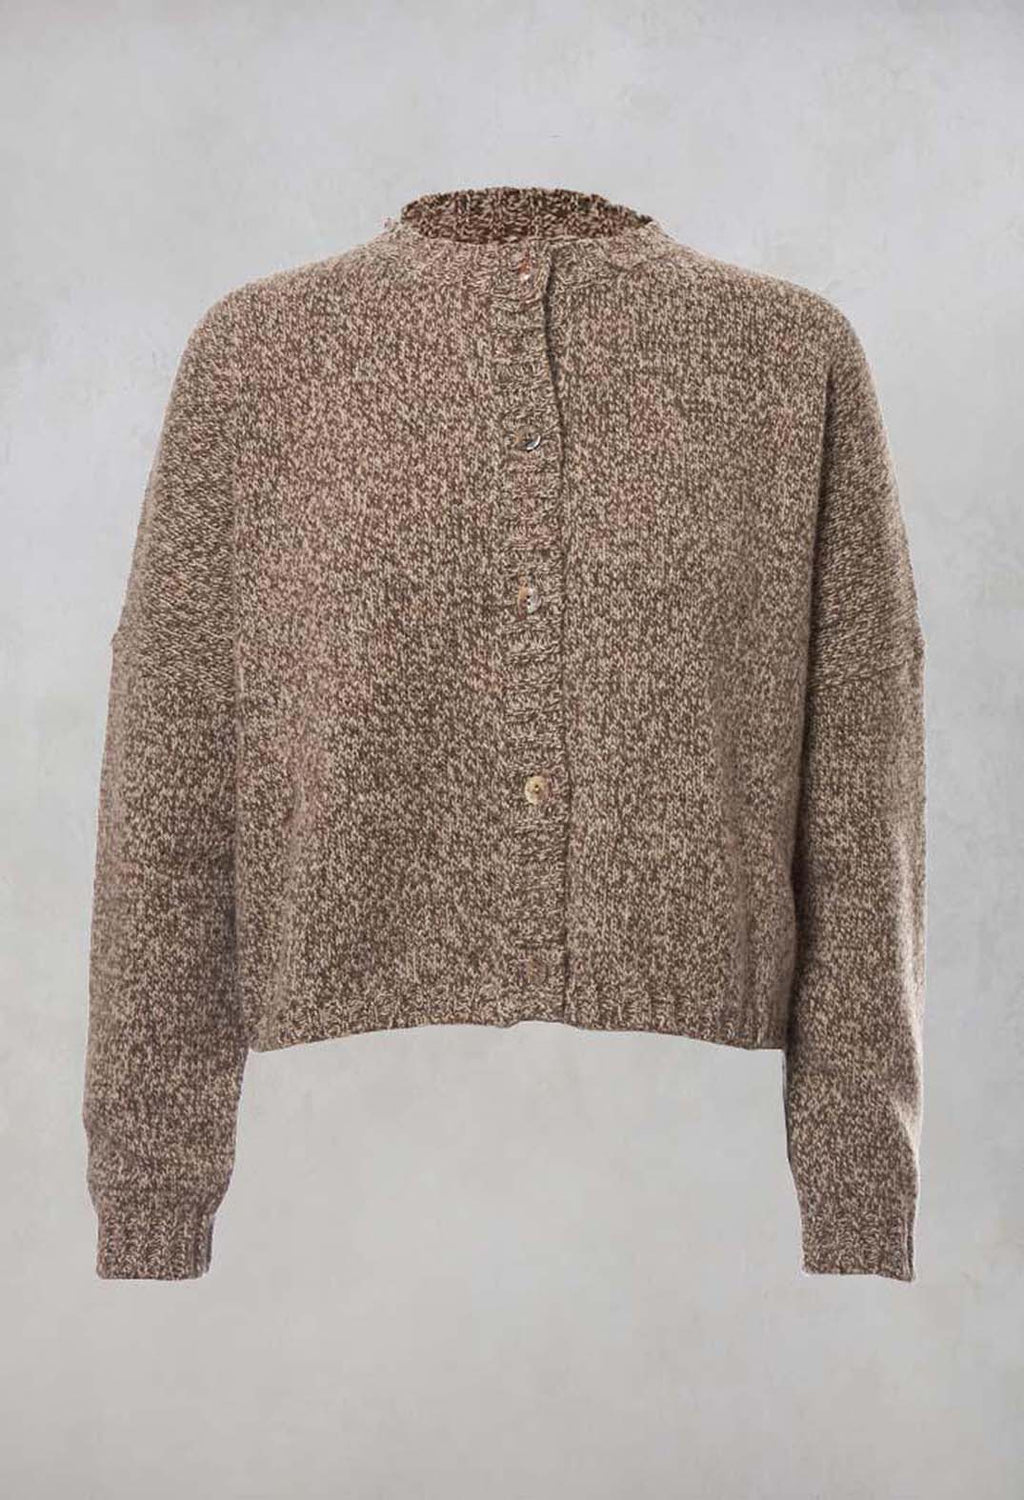 Knitted Cardigan in Coffee